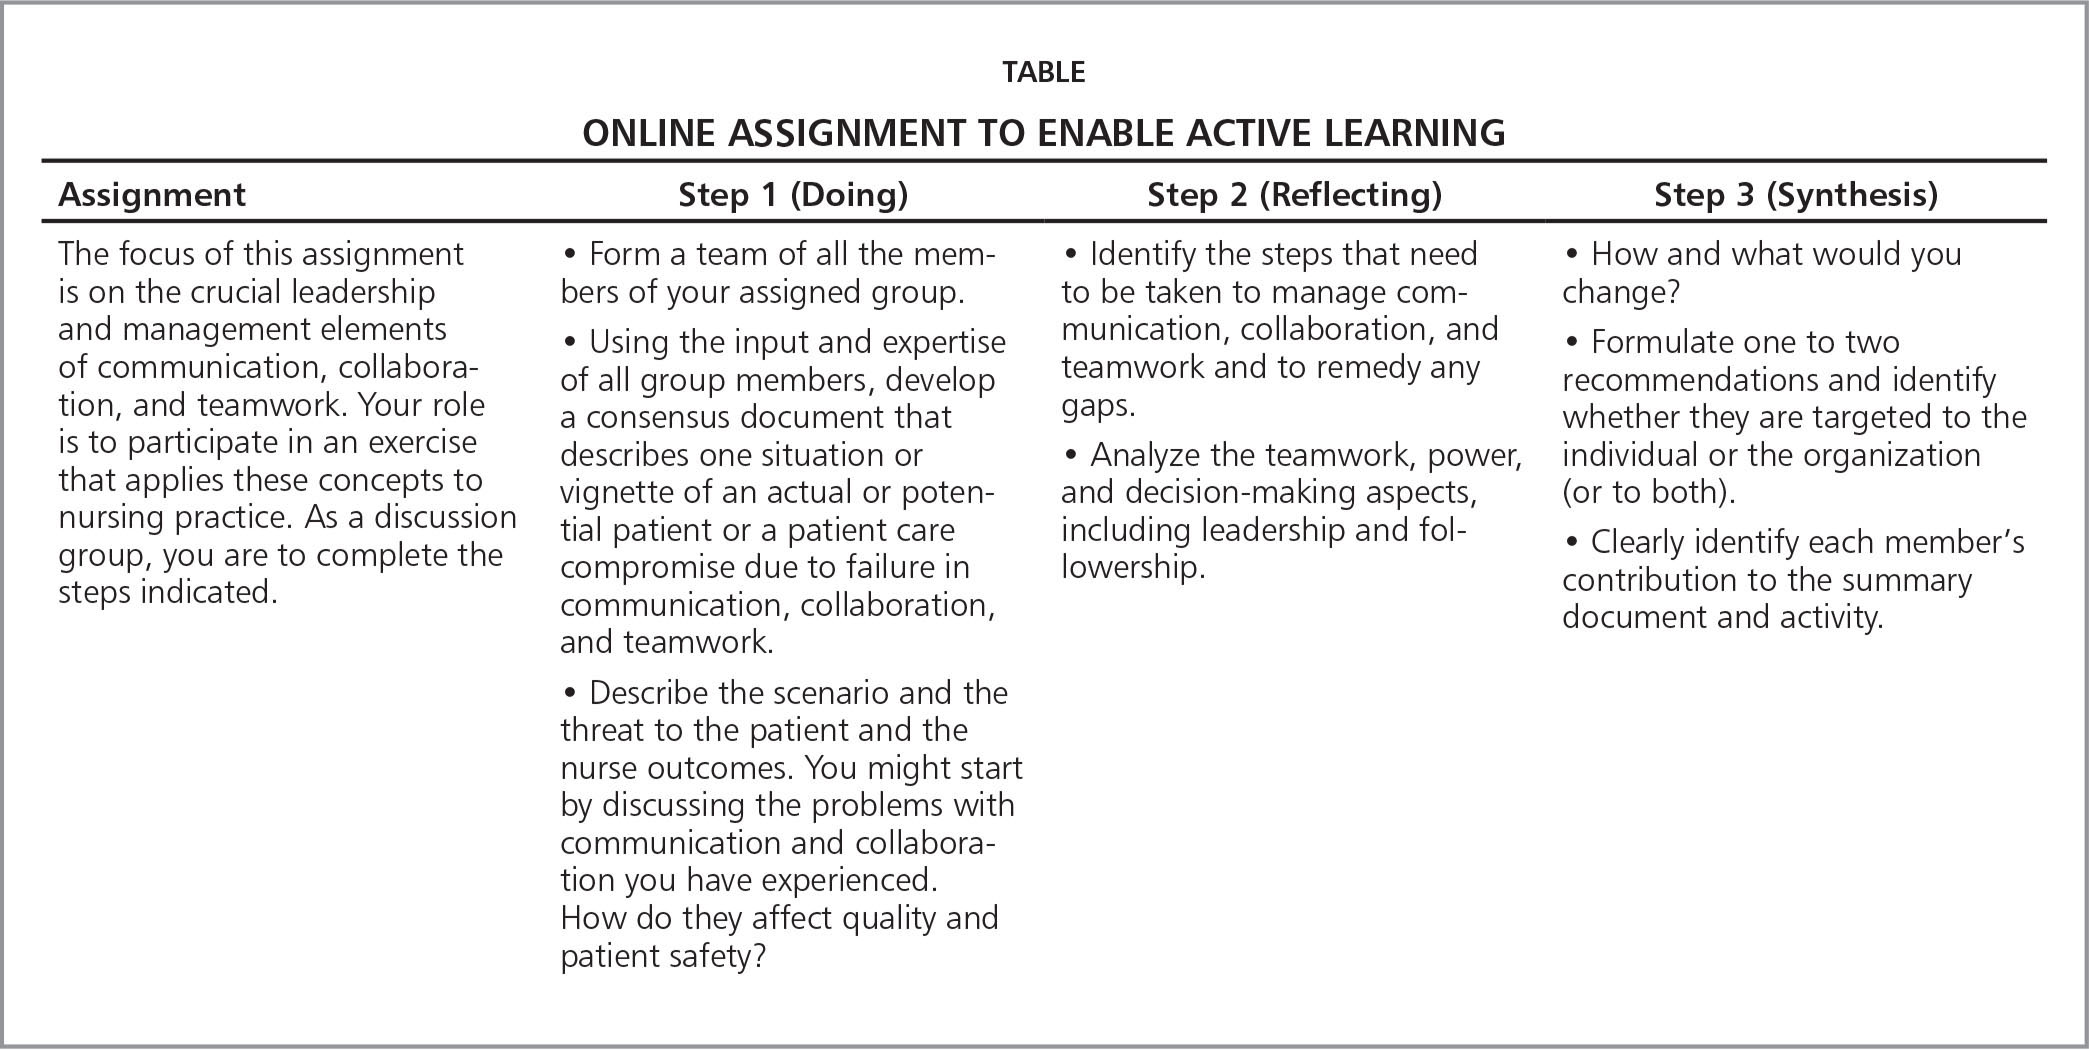 leadership for transitions of care an active learning innovation online assignment to enable active learning